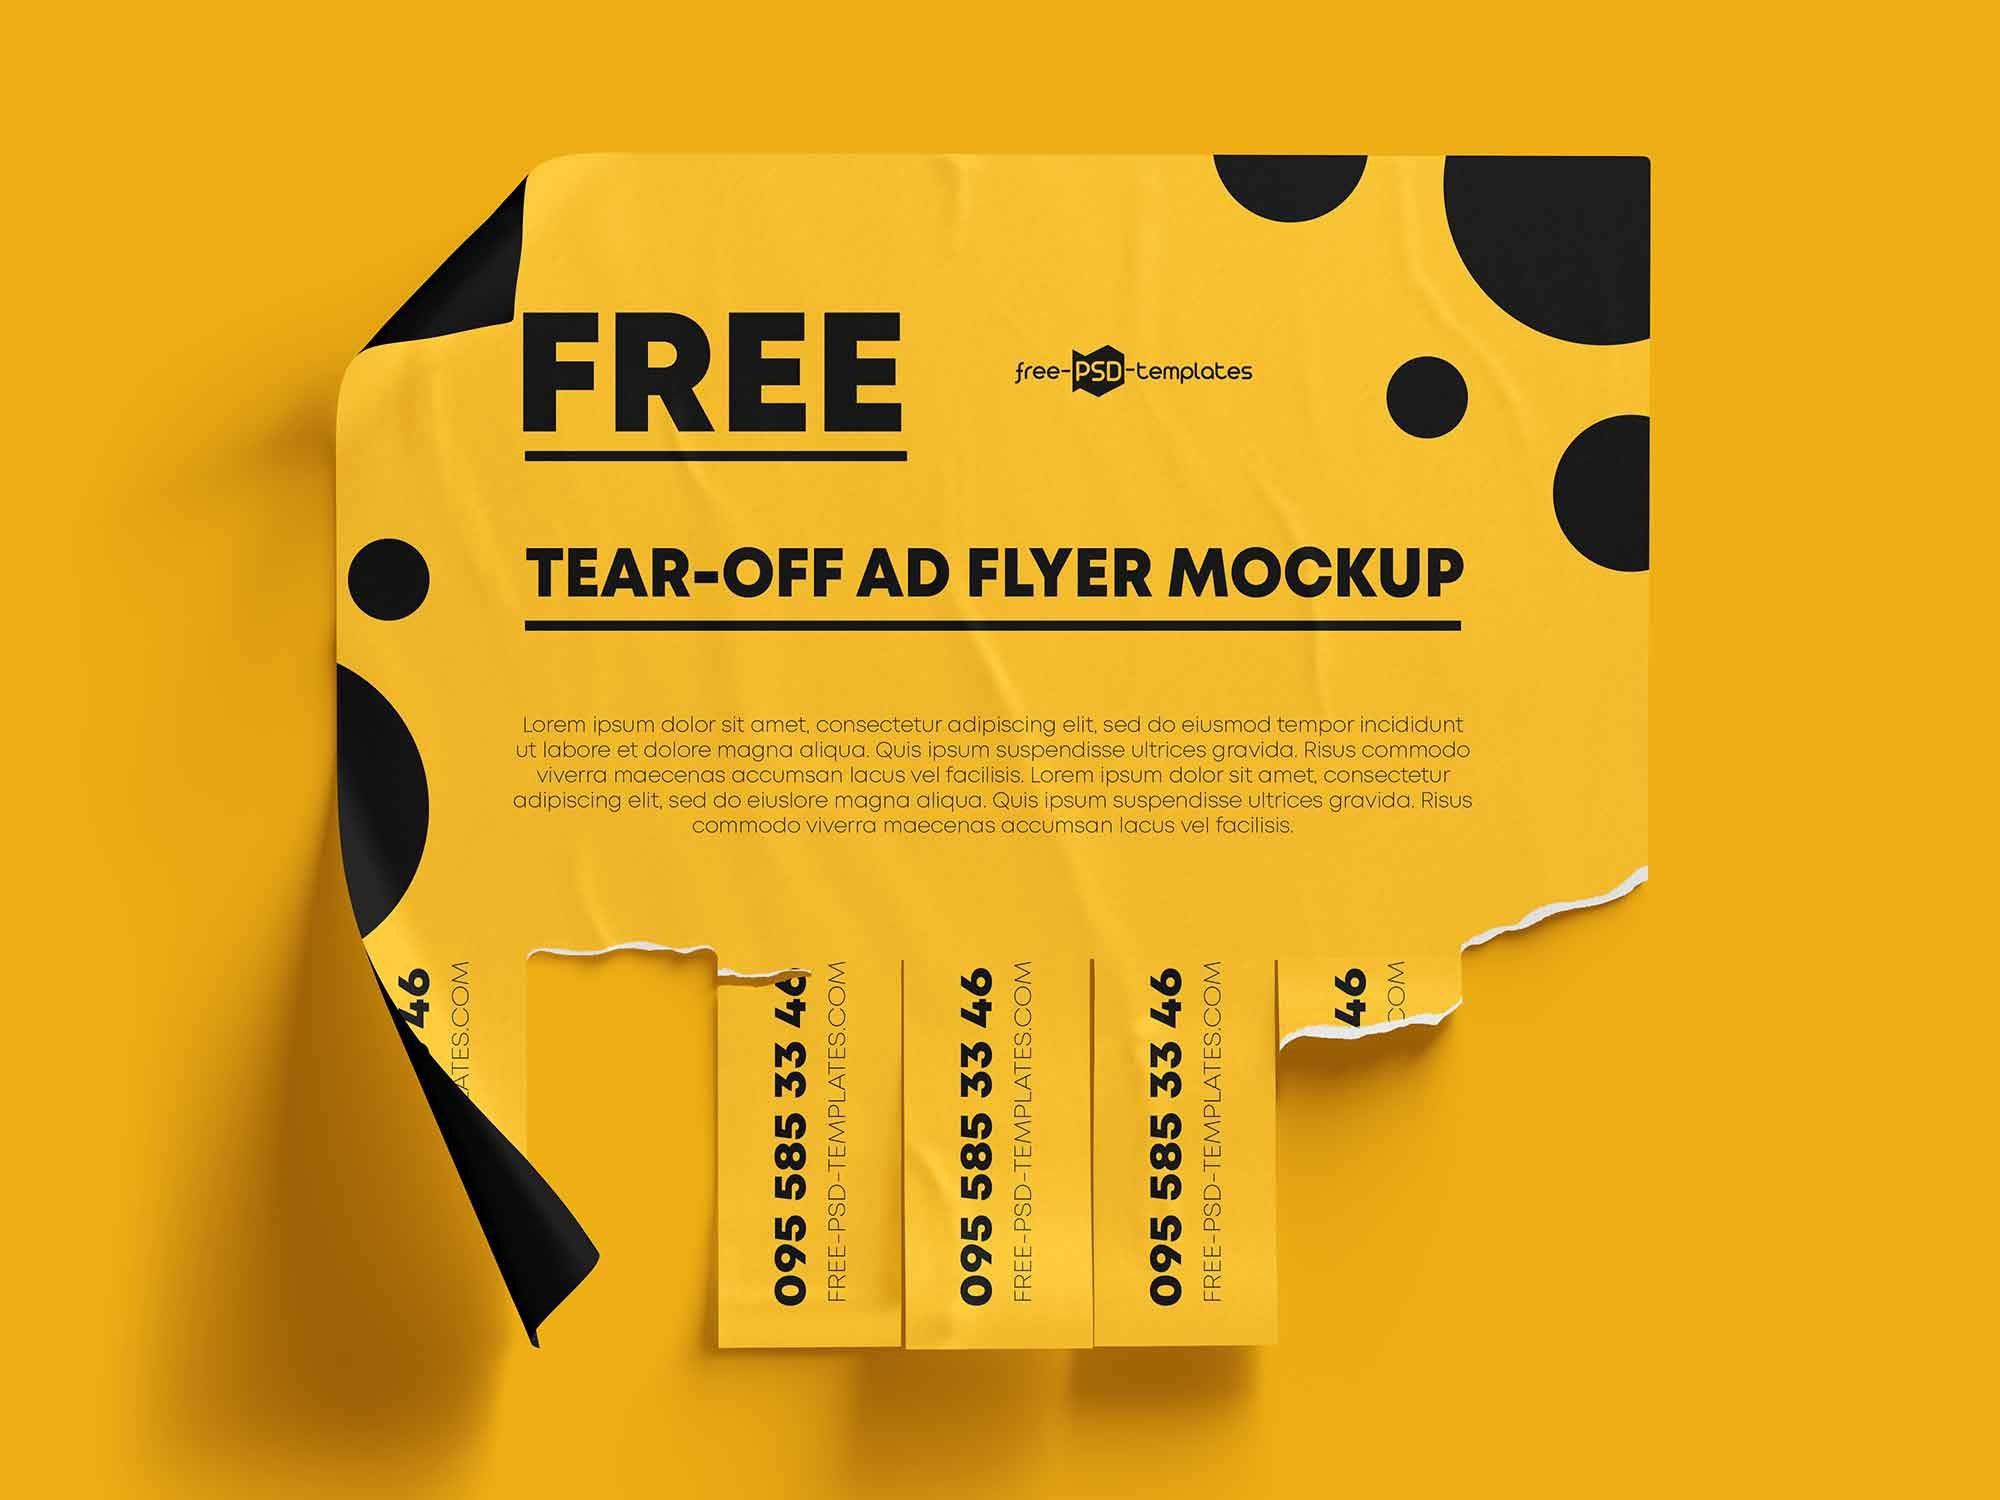 006 Impressive Free Tear Off Flyer Template Inspiration  Tear-off For Microsoft Word Printable With TabFull